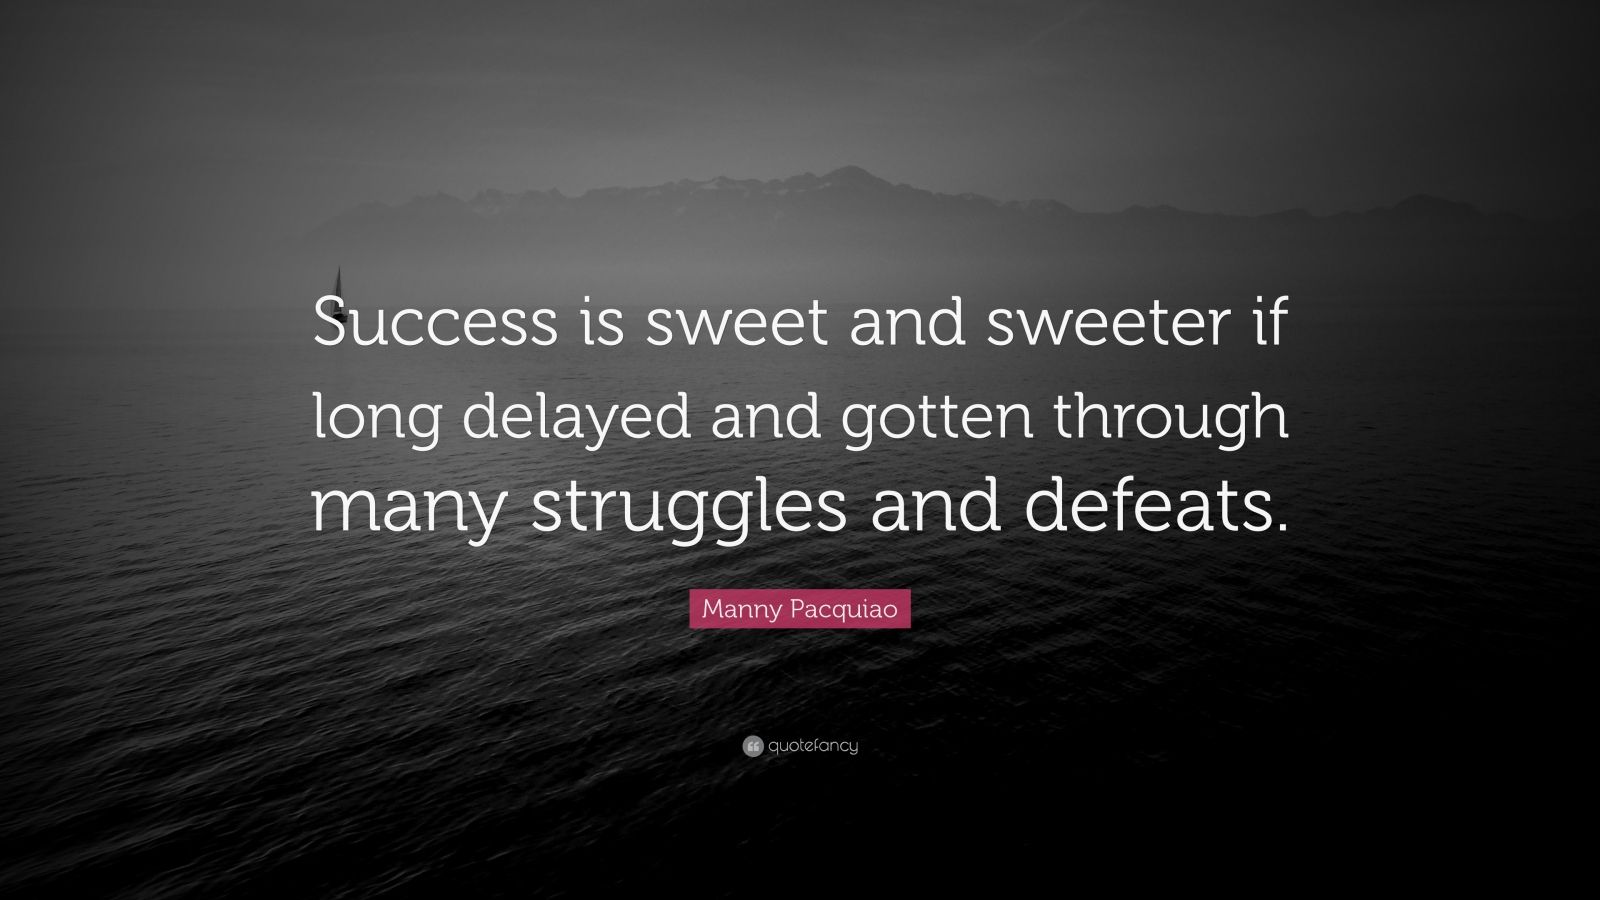 Manny Pacquiao Quotes Wallpaper Manny Pacquiao Quote Success Is Sweet And Sweeter If